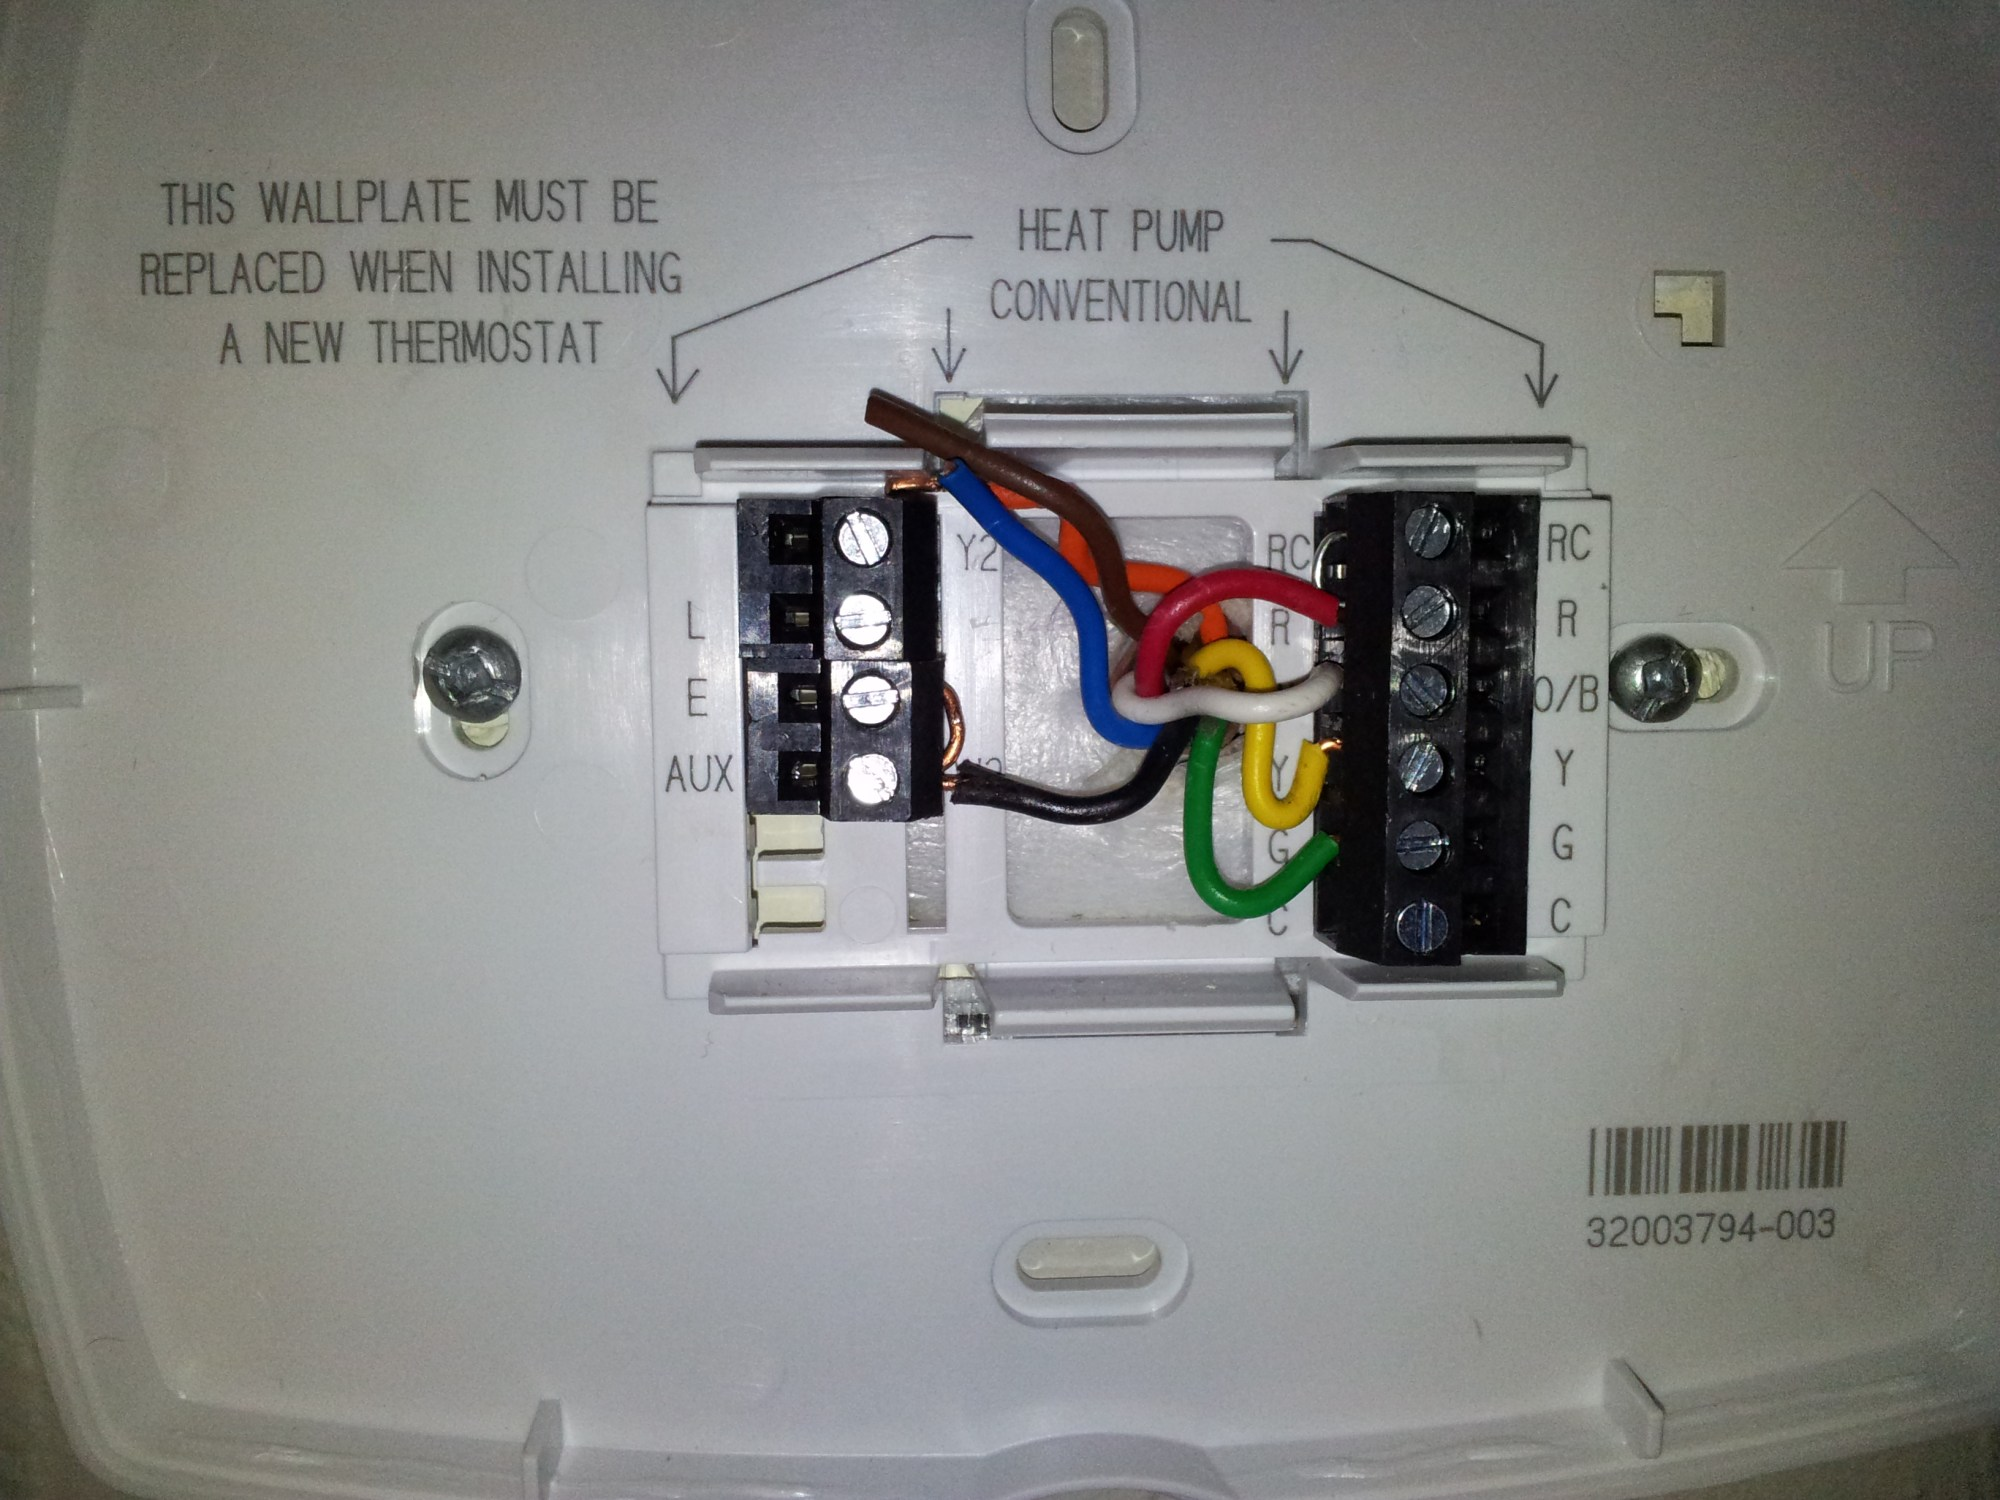 hight resolution of how to wire a honeywell thermostat diagram honeywell heat pump blog wiring diagram